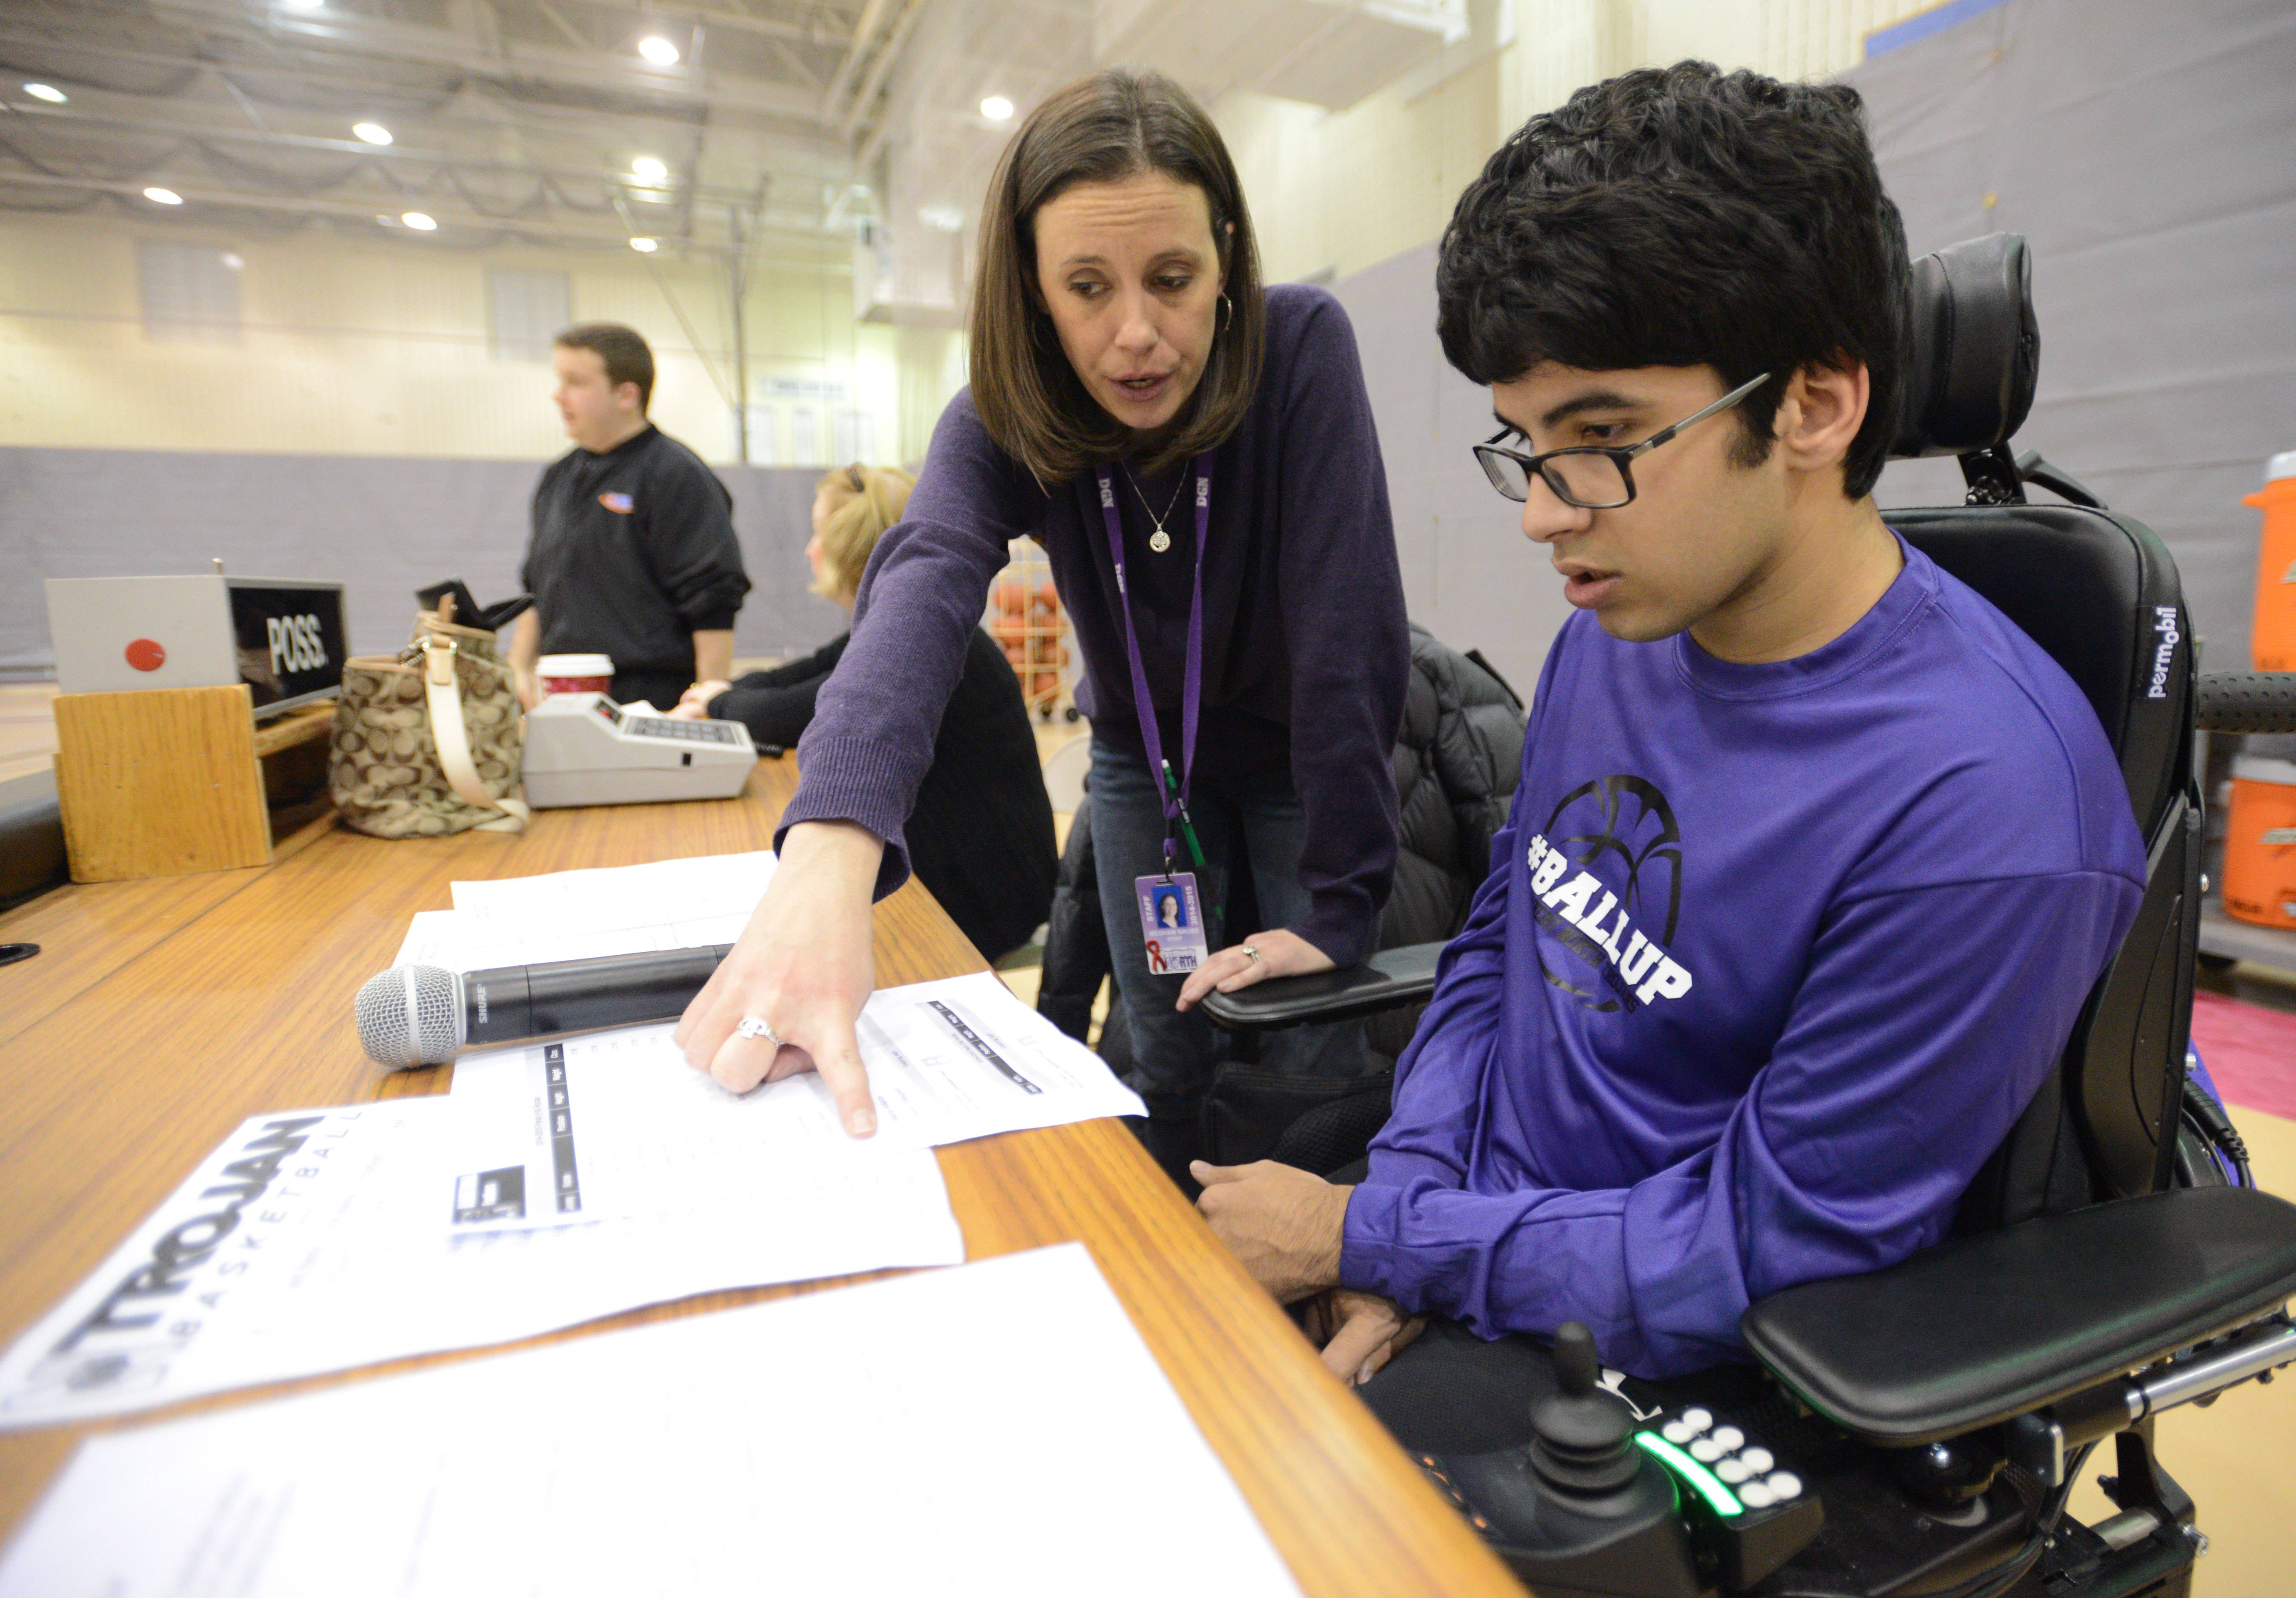 Zain Bando, a 15-year-old freshman at Downers Grove High School, wants to become a professional radio or TV broadcaster.